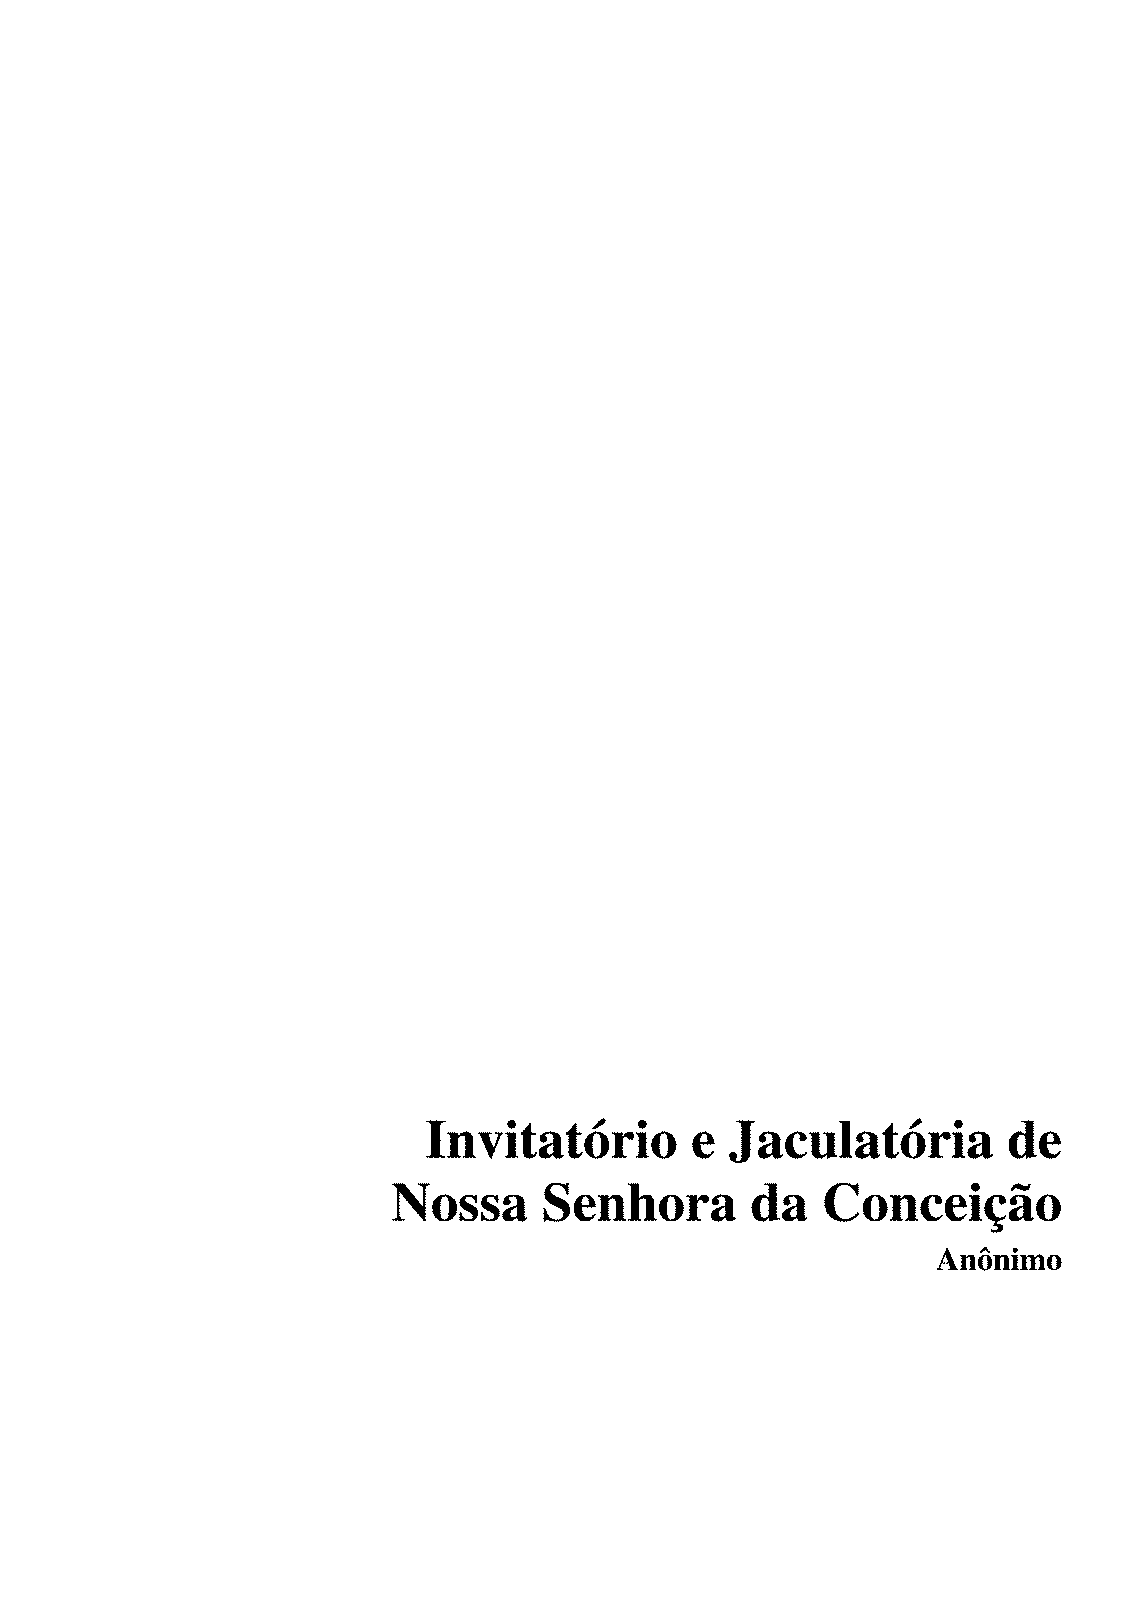 PMLP590327-anonimo invitatorio e jaculatoria nsc.pdf